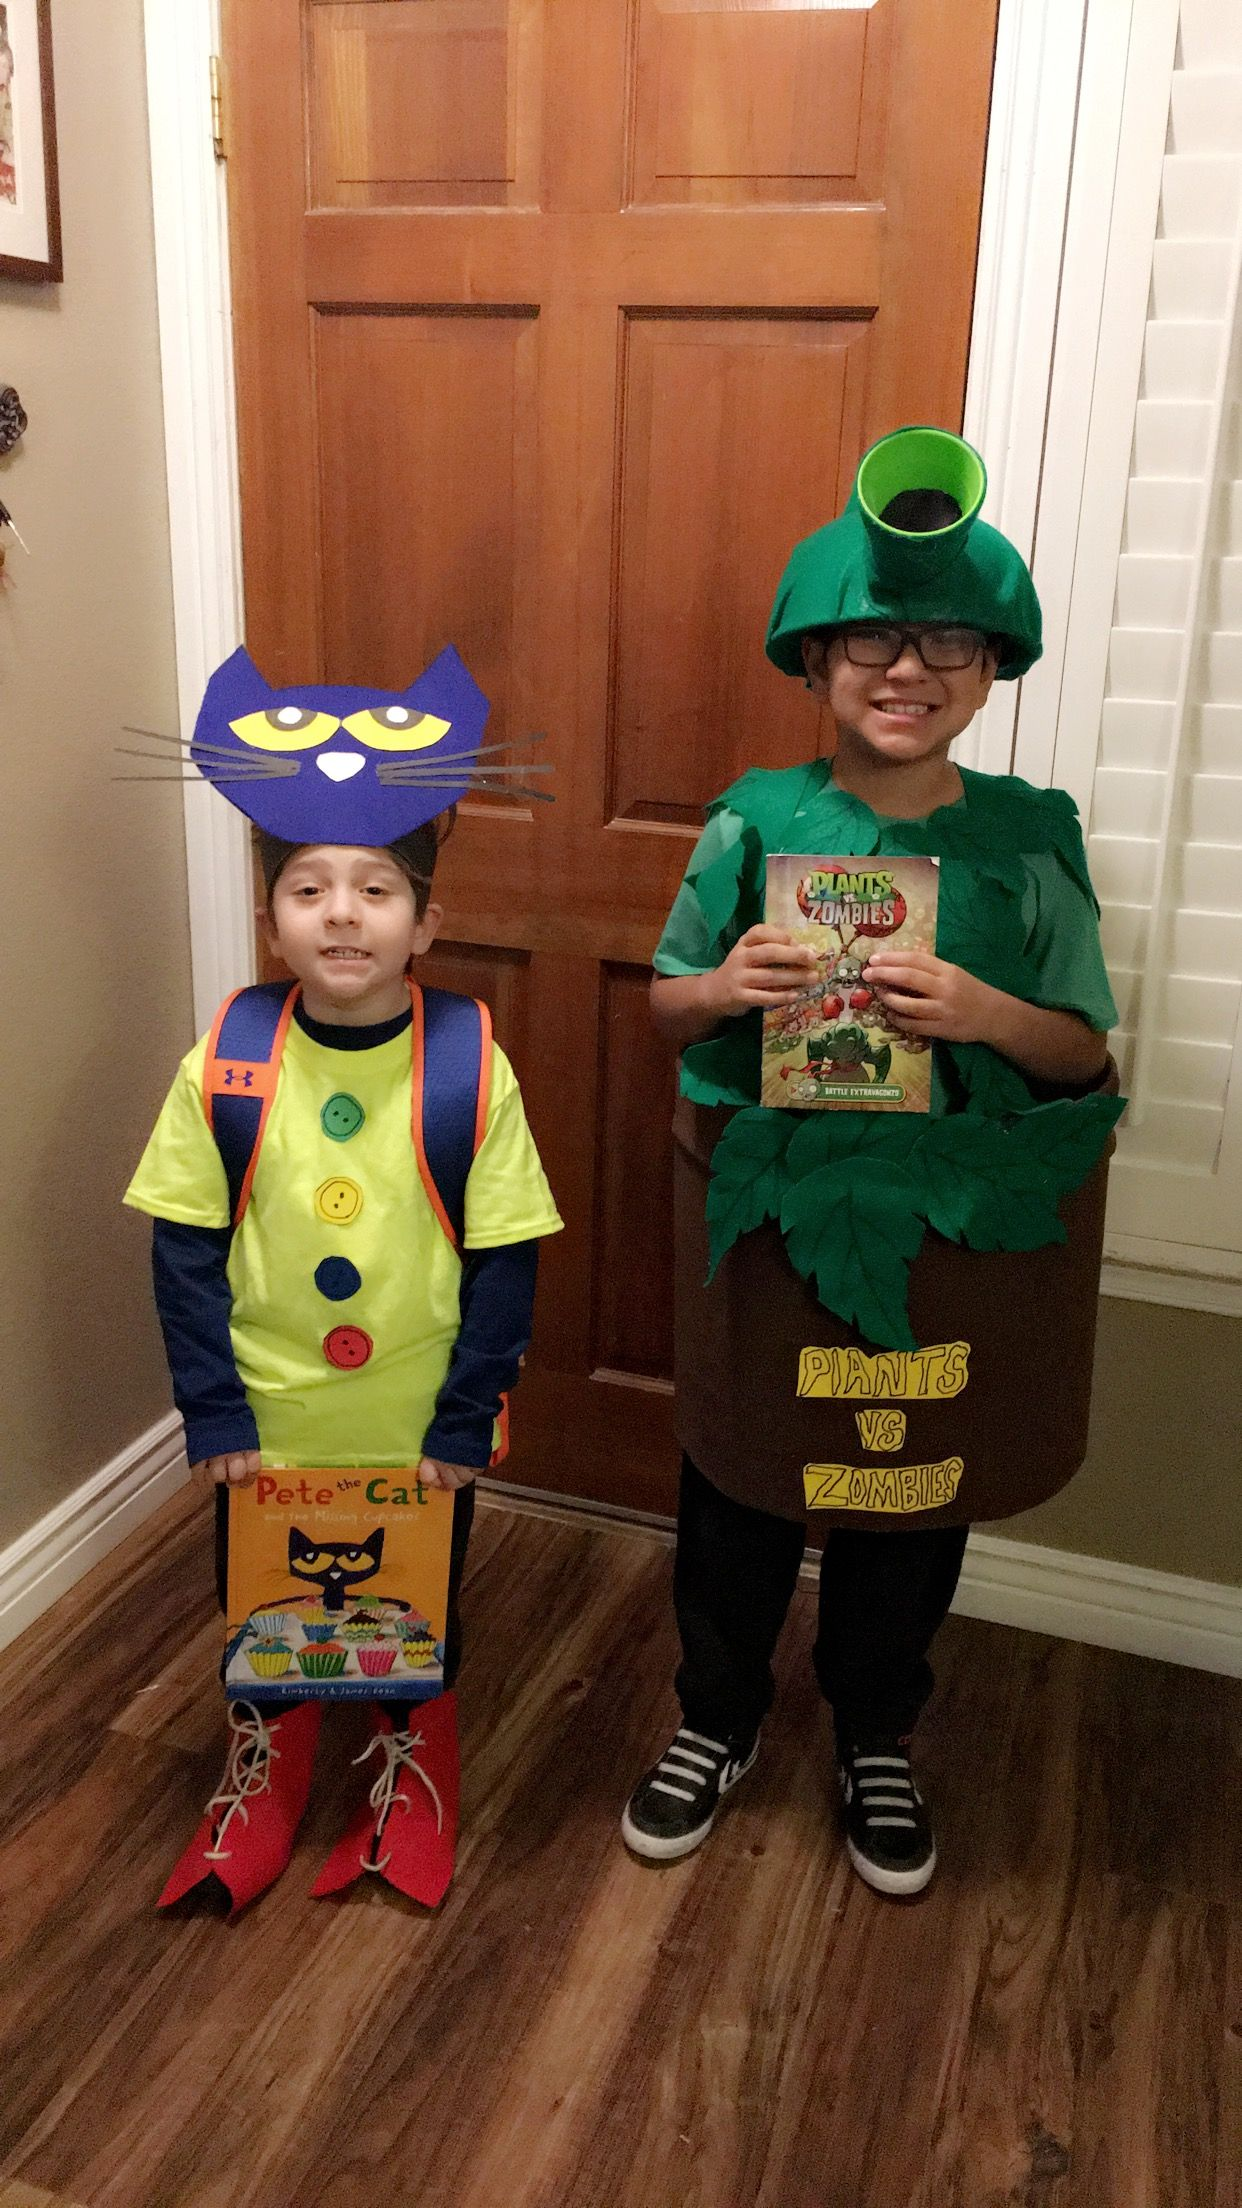 Pete The Cat And Pea Shooter Costumes For Character Book